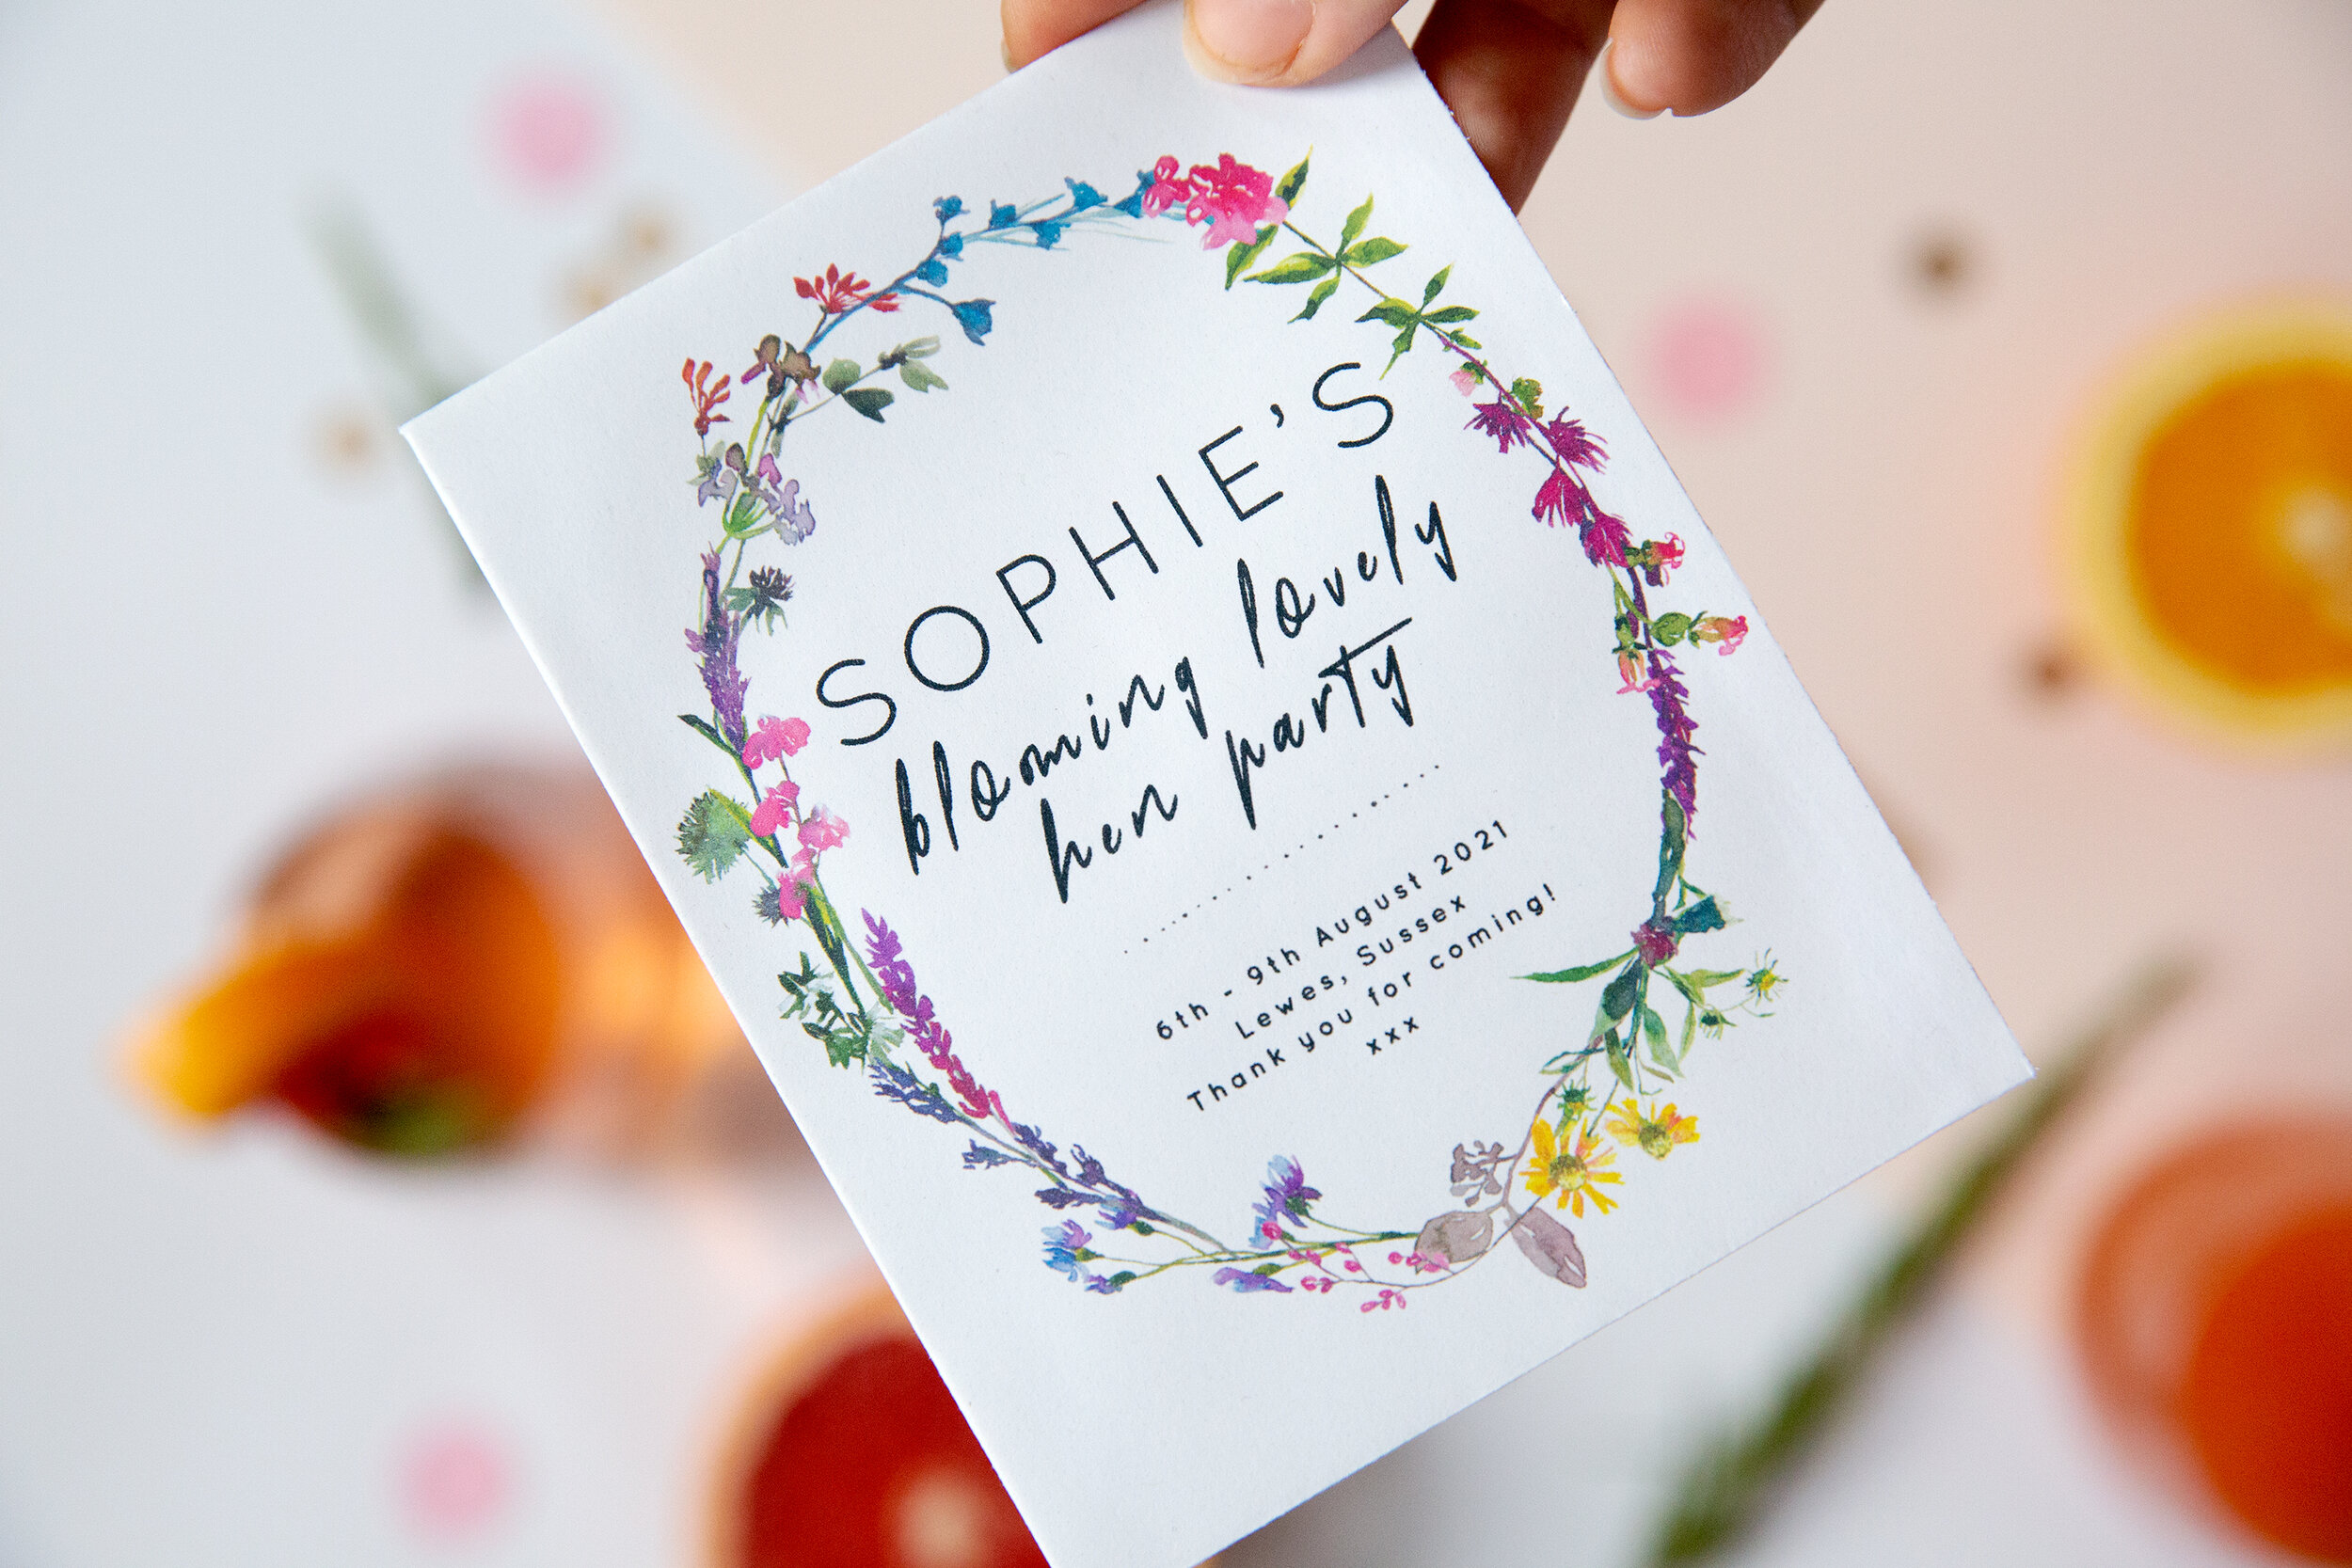 Hen Party - Sophie's blooming lovely party 3.jpg